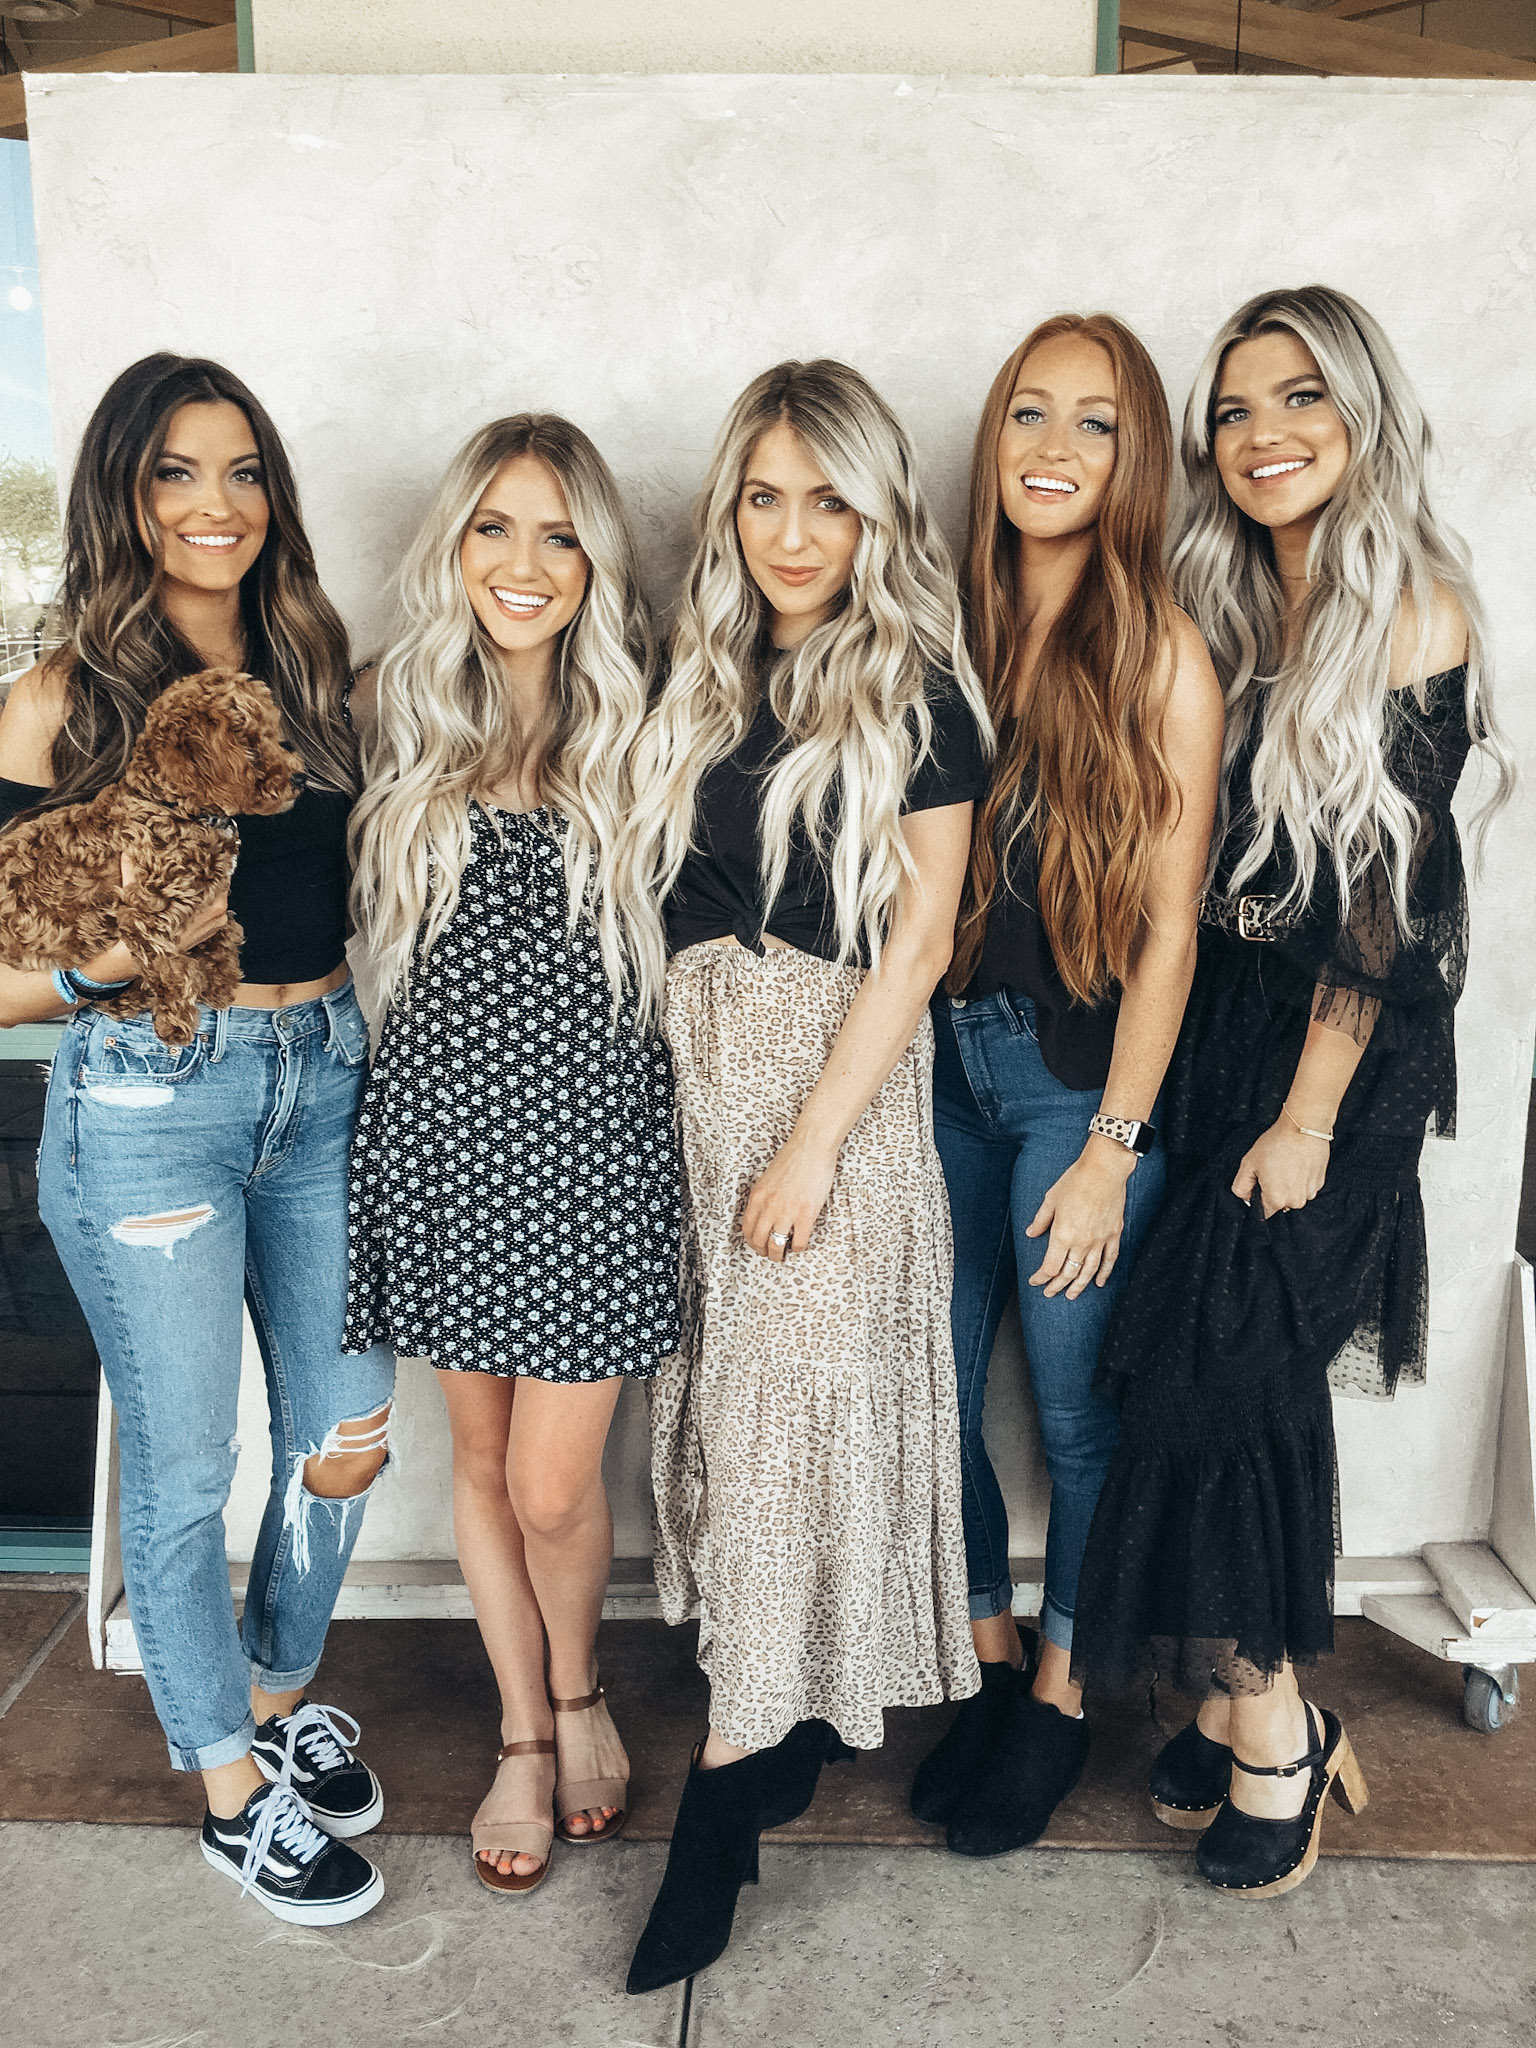 Tia Booth (from The Bachelor)  -  Savannah Labrant (my sister)  -  Me  -  Katie Yovin (Sav's friend form high school)  -  Kendall Hyzdu (her baby, Hazel, was born between the time Senna and Posie were)